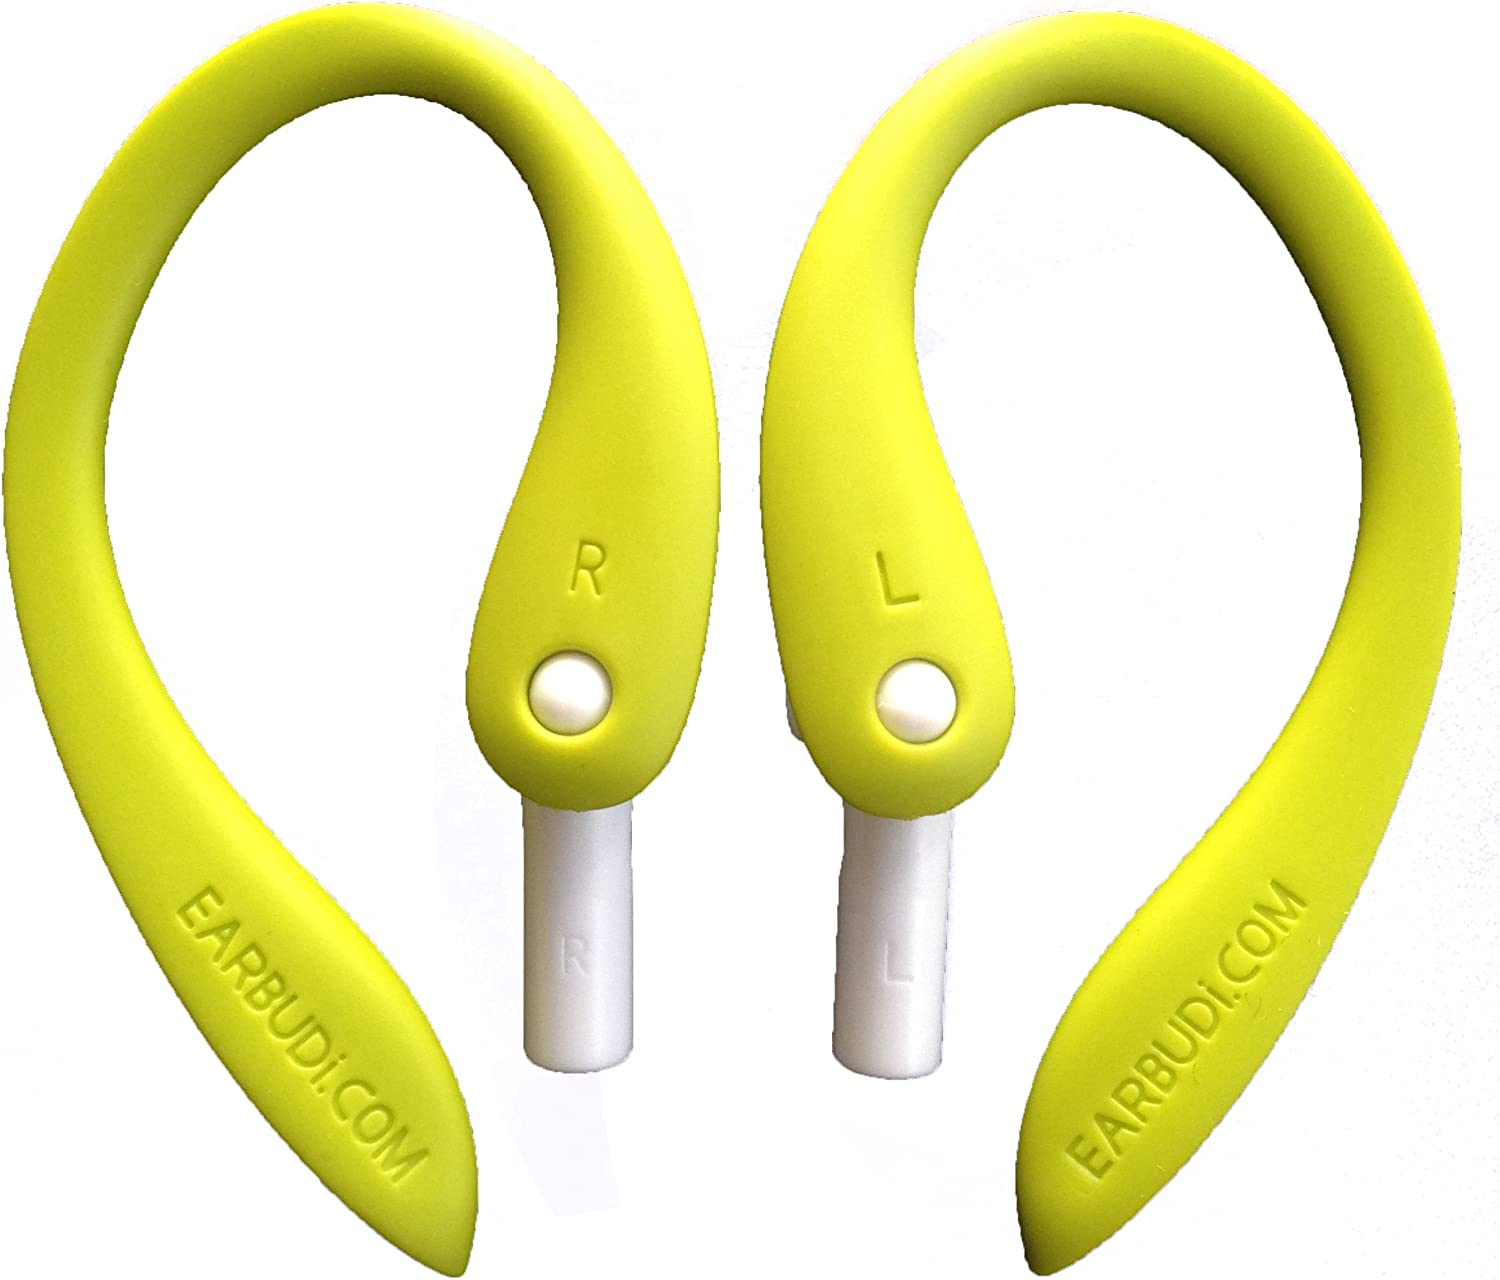 EARBUDi Ear Hooks Compatible with Apple EarPods | Adjustable Rubber Ear Loops Keep Apple EarPods in Place During Activity | Made for Wired EarPods That Come Free with Every iPhone | Neon Green